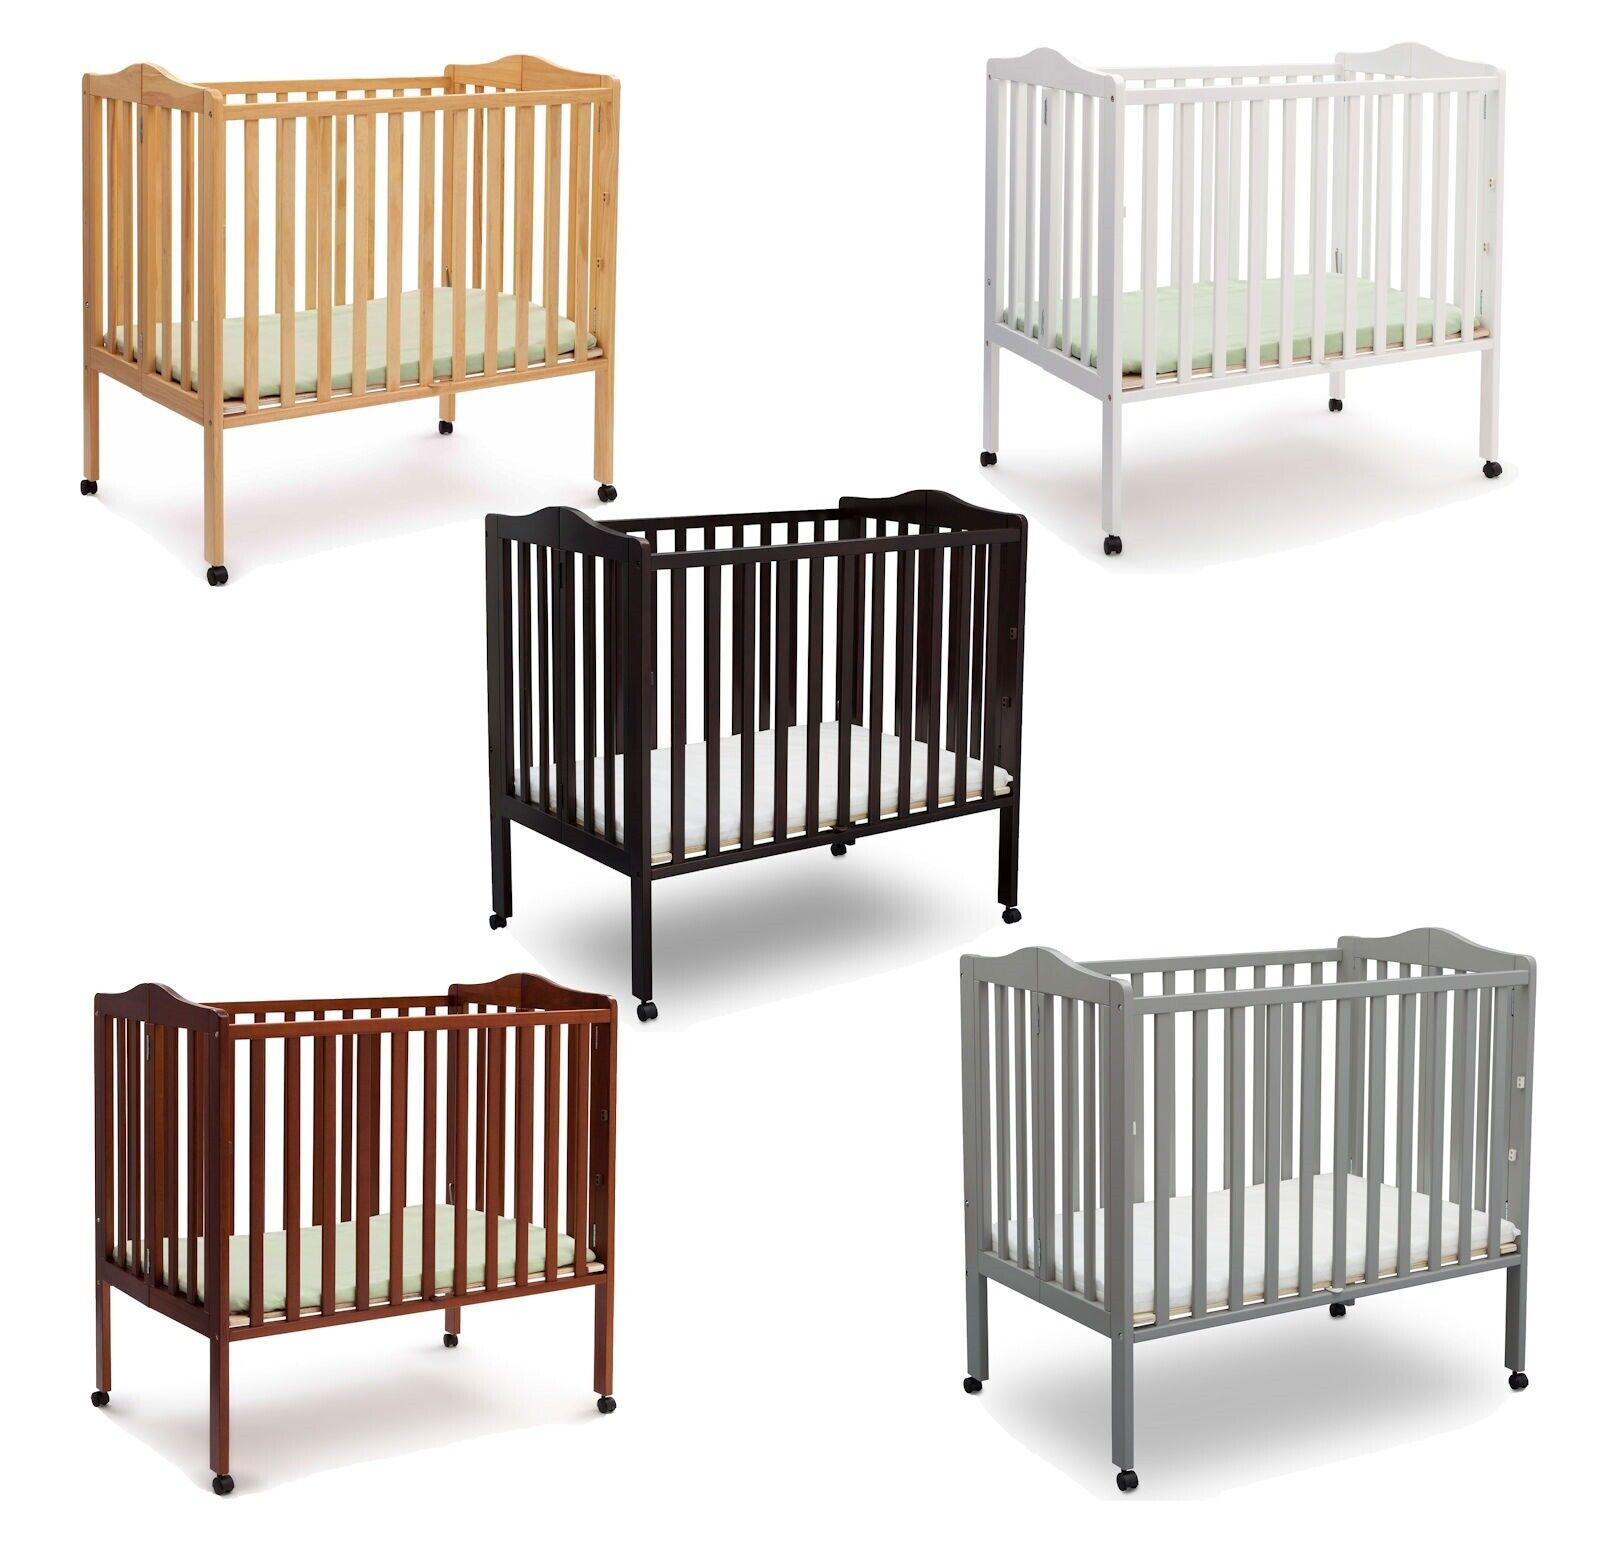 Wood Baby Crib Convertible Toddler Bed with Mattress Folding